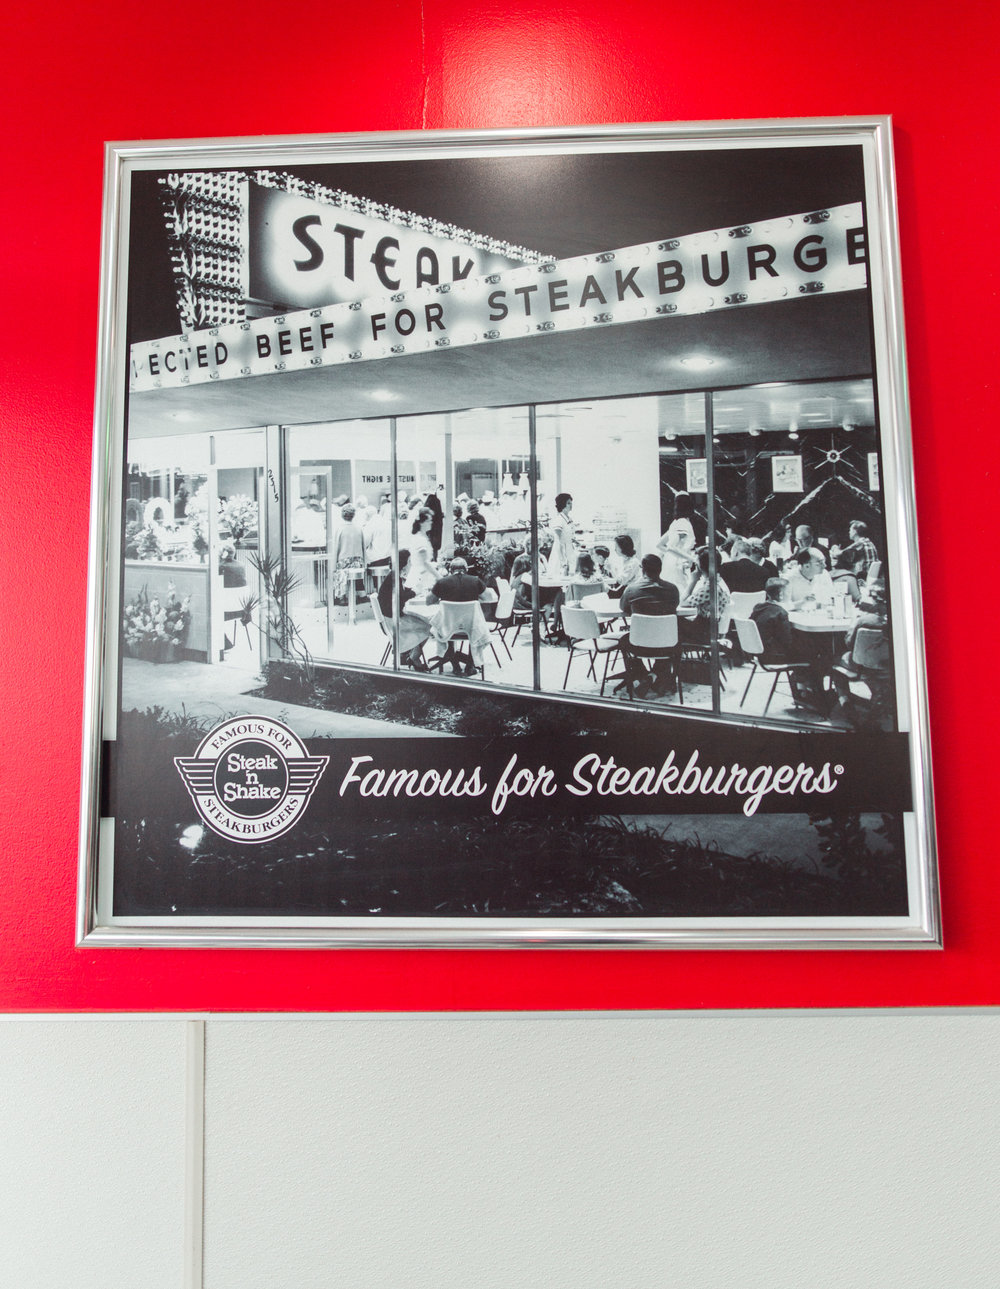 Steak 'n shake (39 of 61).jpg